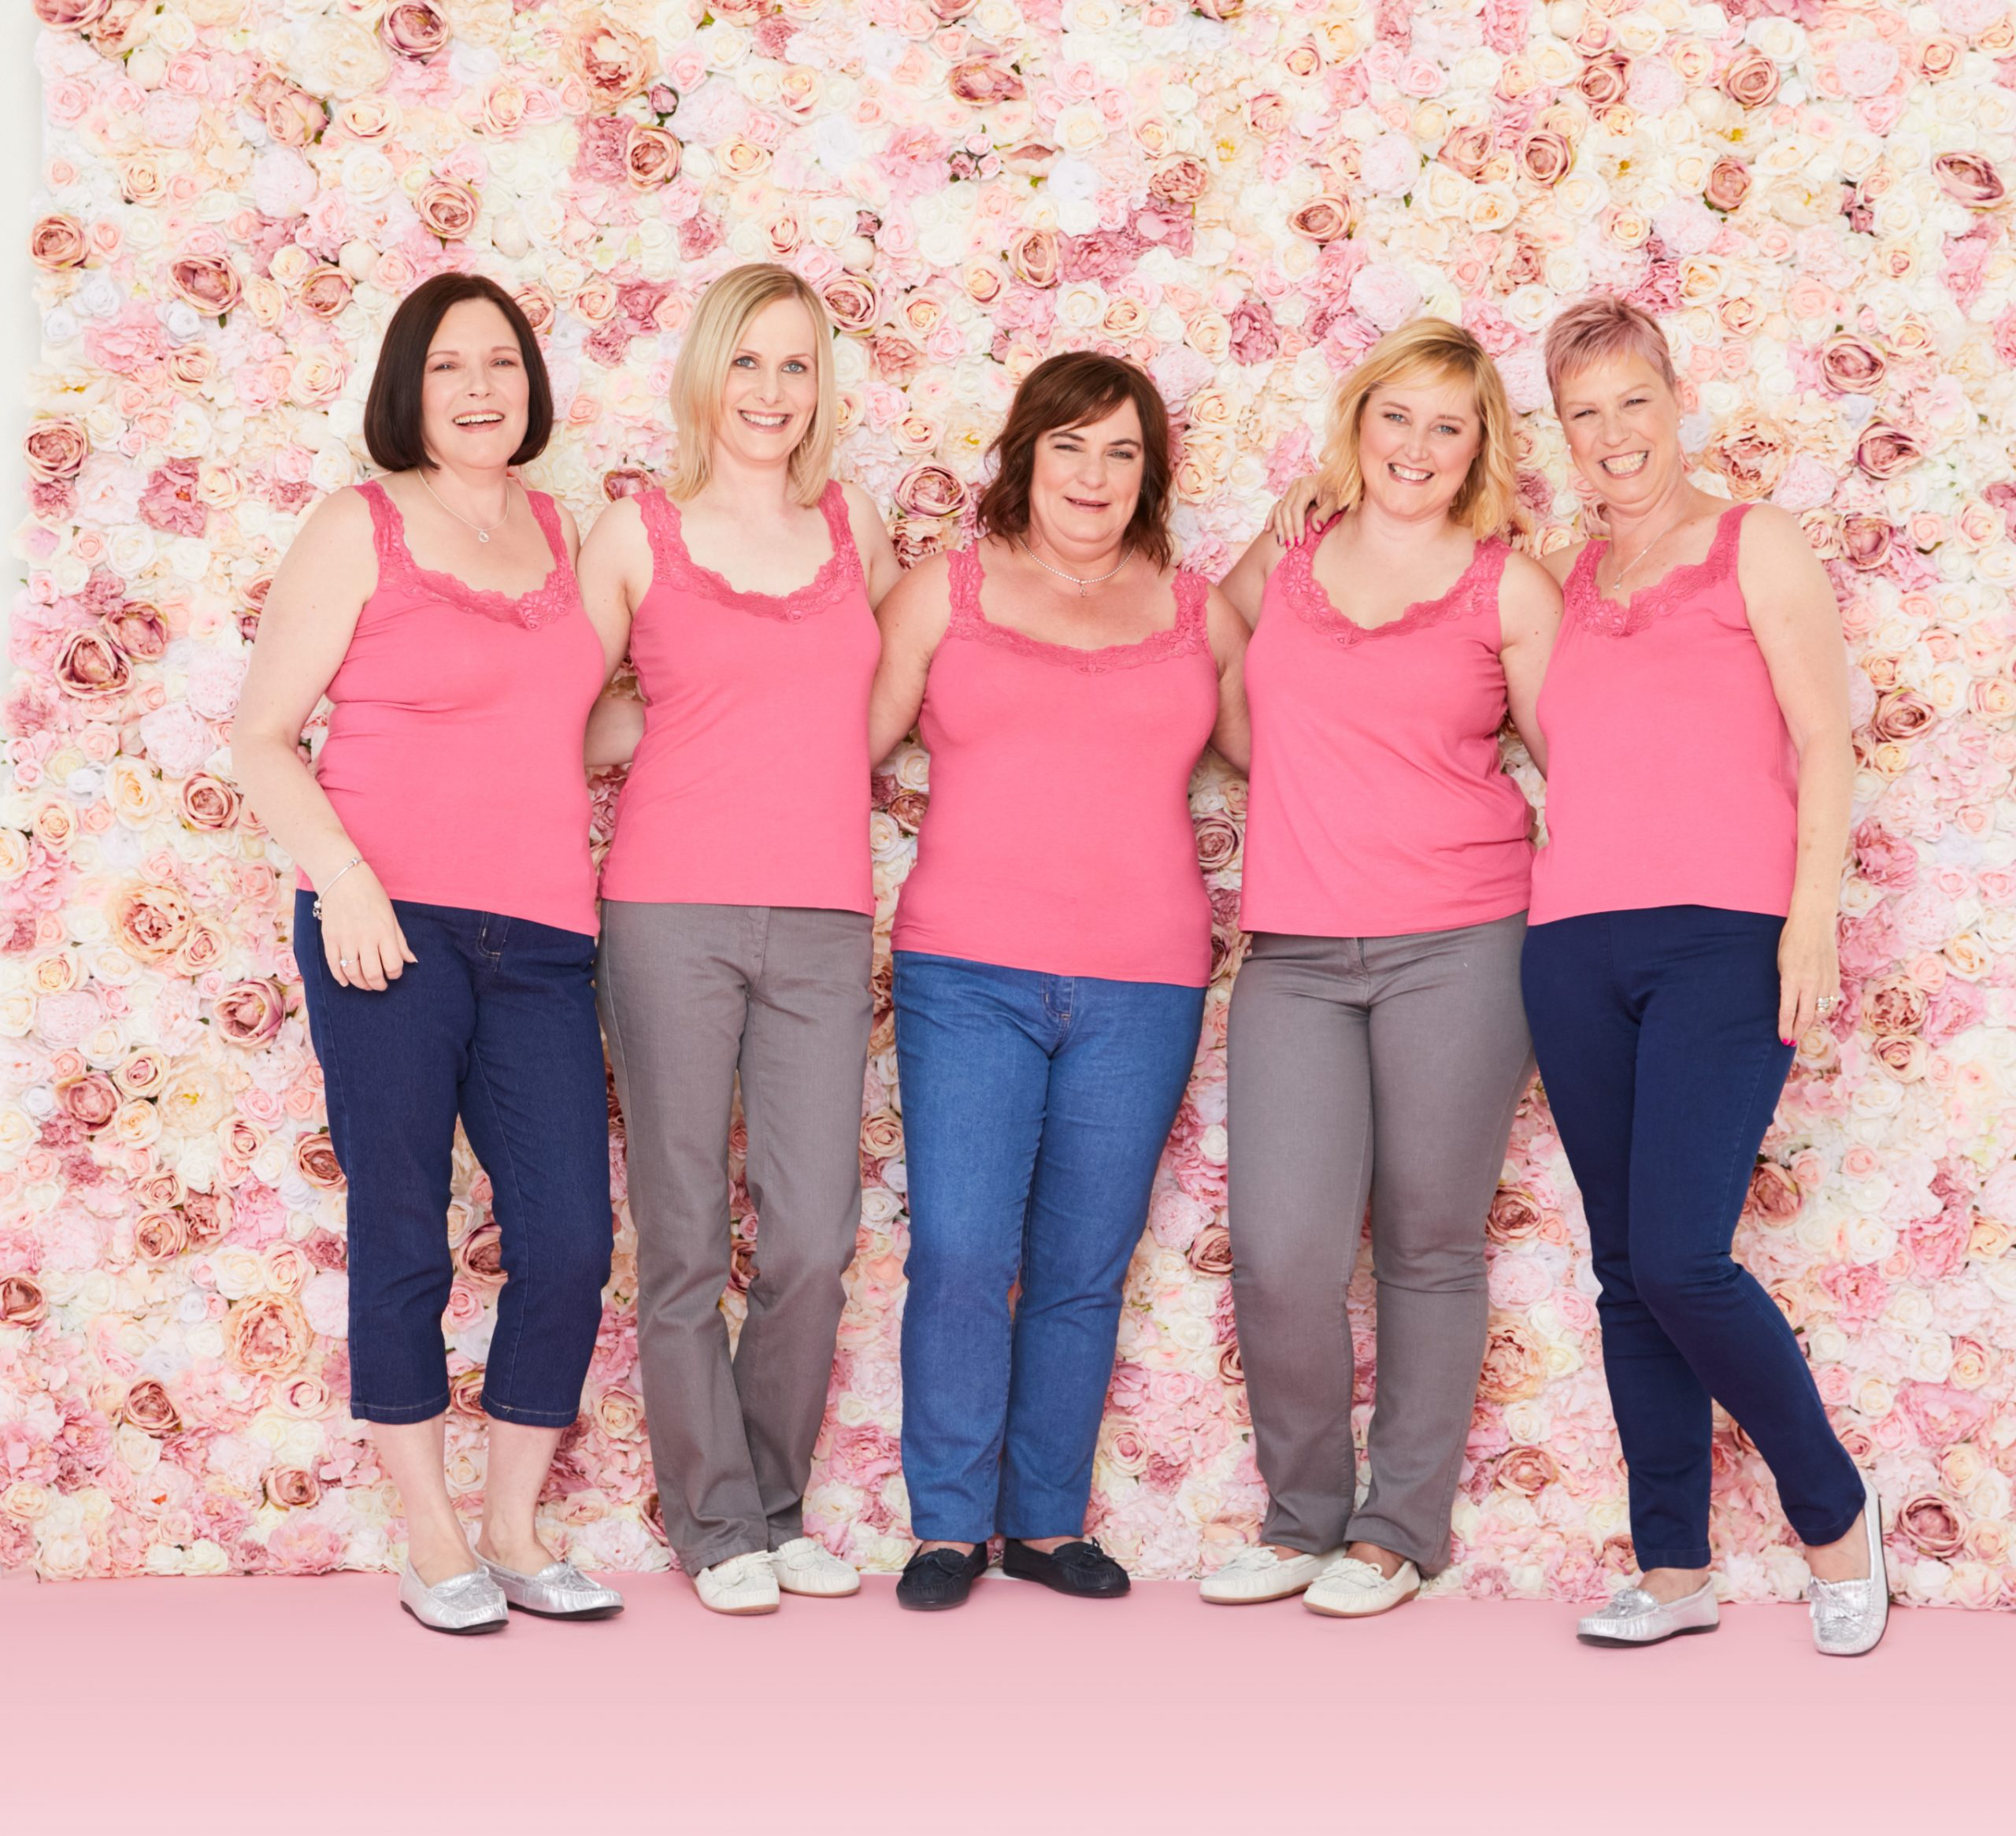 breast cancer now female group